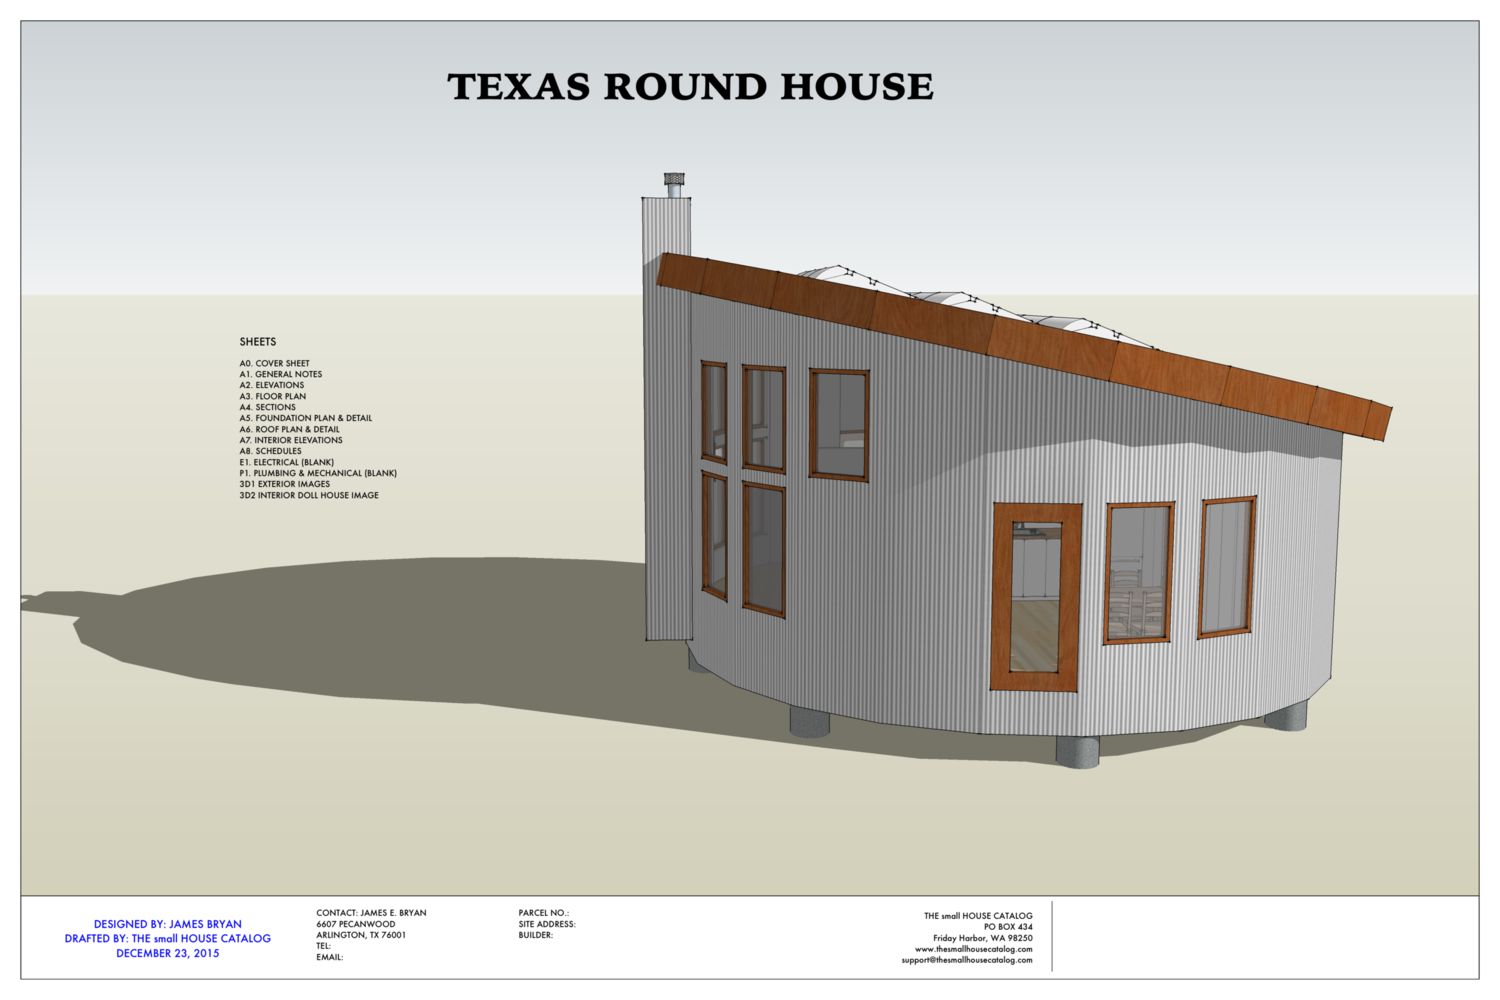 No. 27 - Round House — THE small HOUSE CATALOG Texas Small Home Plans on luxury homes texas, small log homes texas, house plans texas, small house texas, small home builders texas,